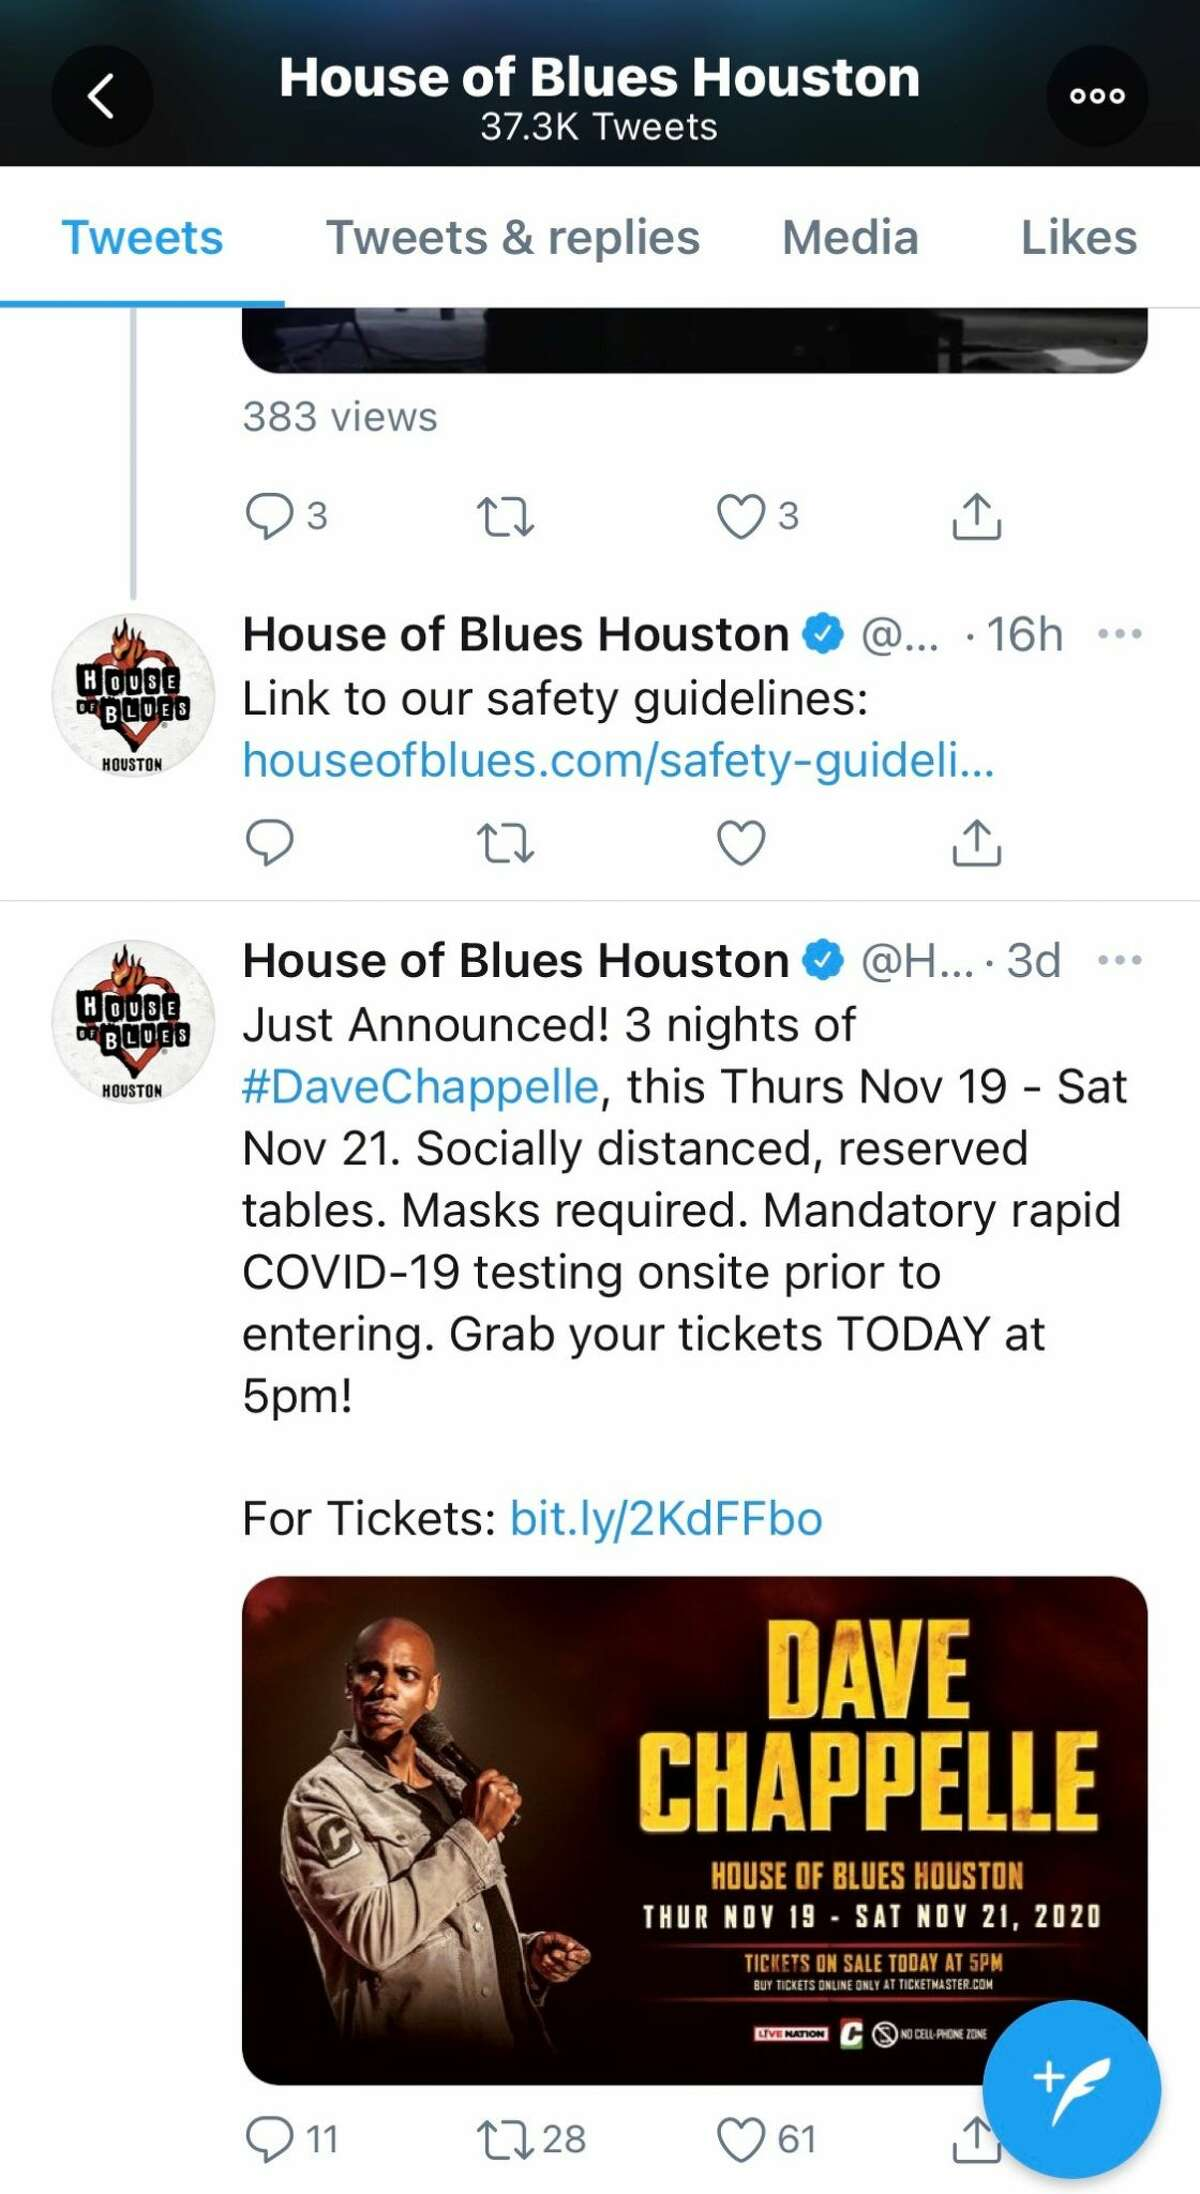 House of Blues is requiring COVID testing for attendees of Dave Chappelle's show.